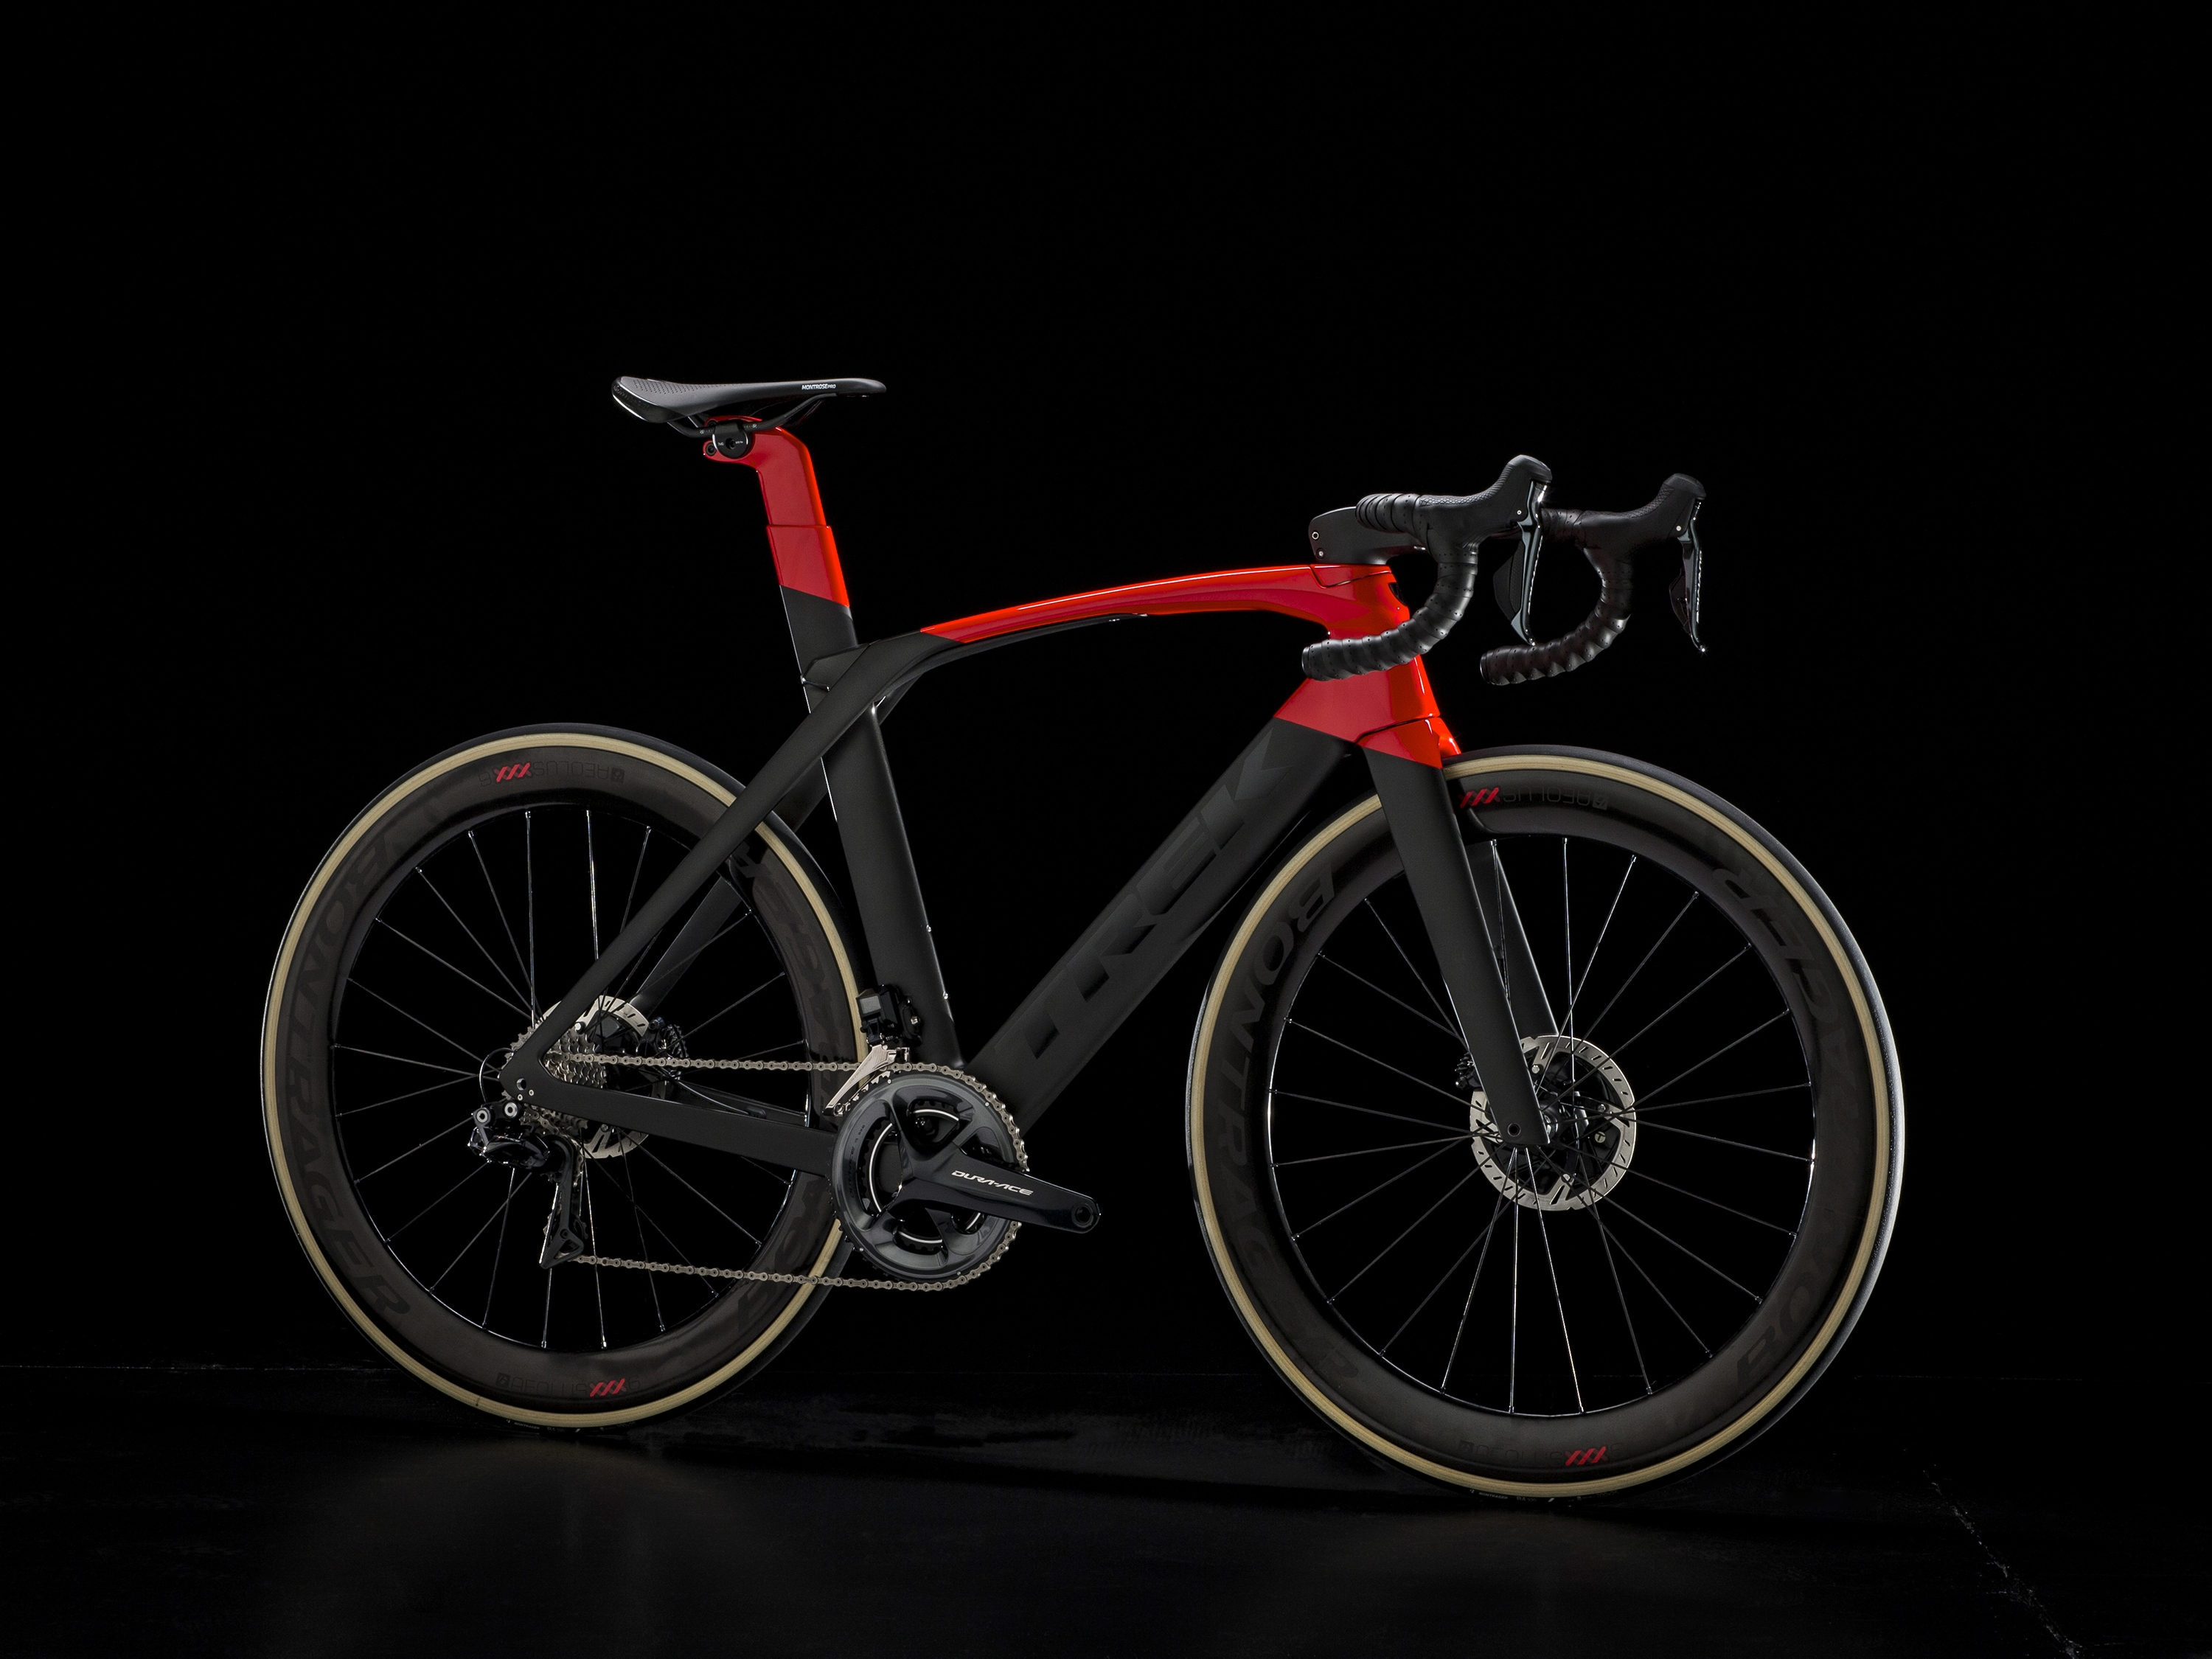 The New 2019 TREK Madone - A 'Tour de Force' to be reckoned